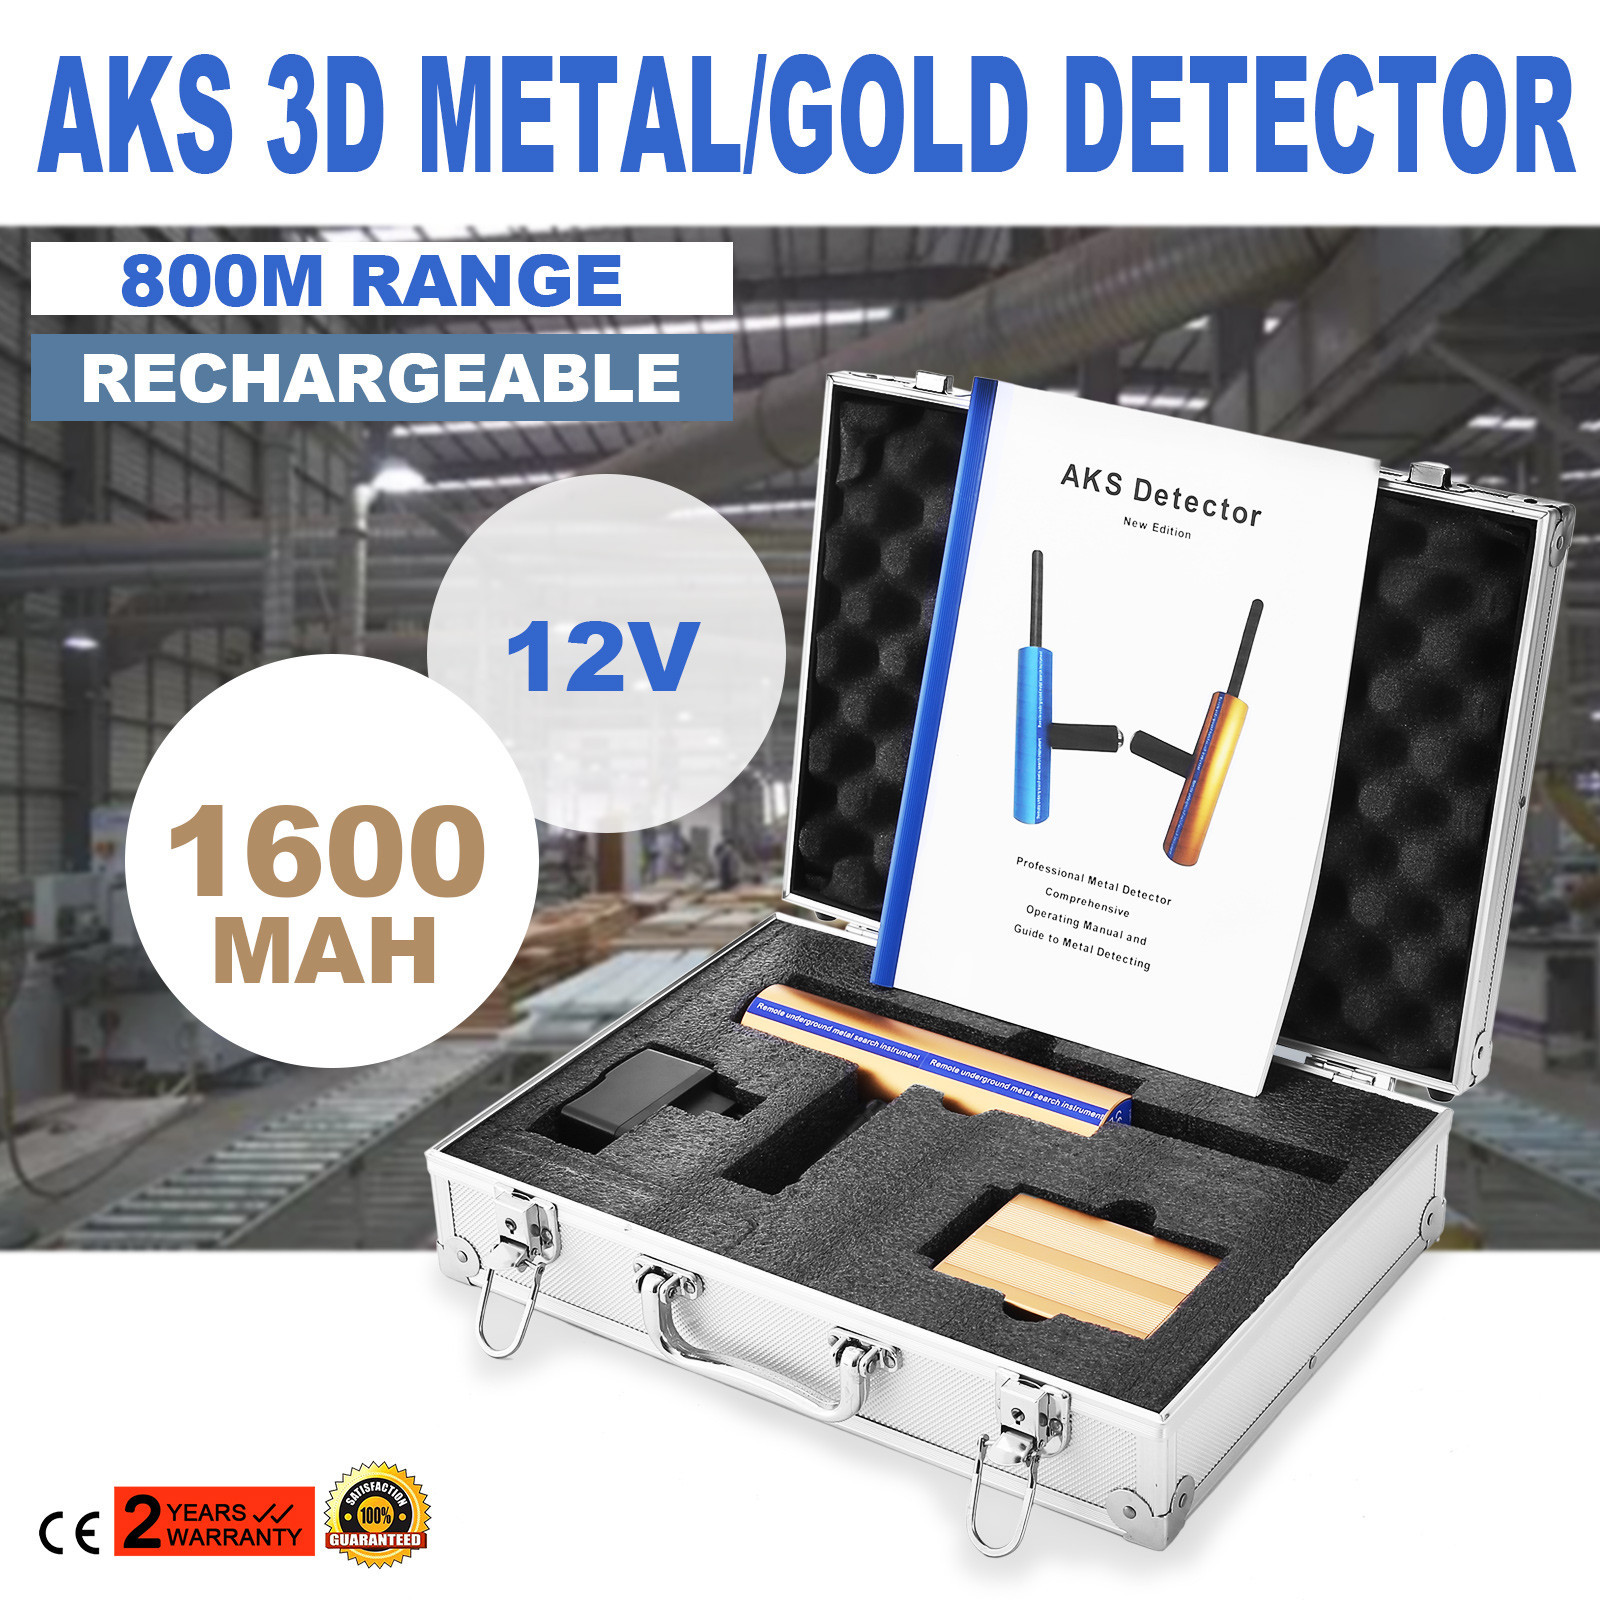 Pro Aks 3d Metal Gold Detector Long Range Diamond 800m Circuits Also Bat Schematic In Addition Professional Multi Function 2016v Finder Hunter Watch This Item Email A Friend